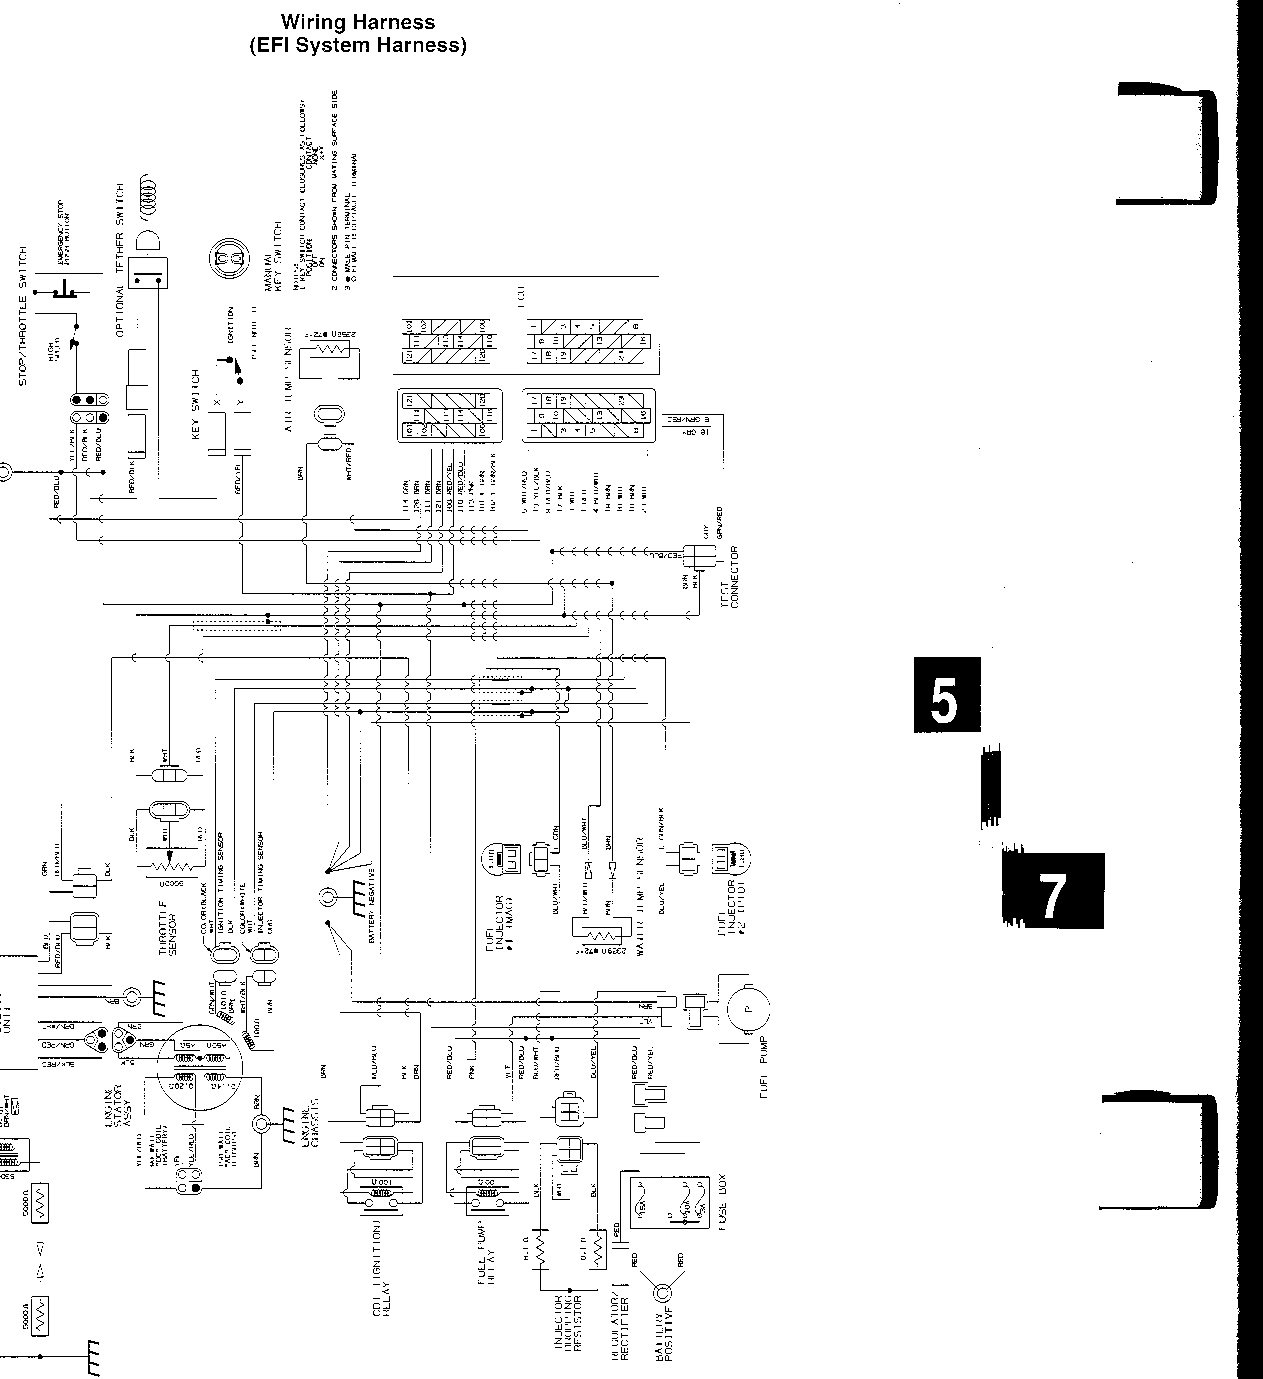 1995 Zr 700 Wiring Harness : 26 Wiring Diagram Images